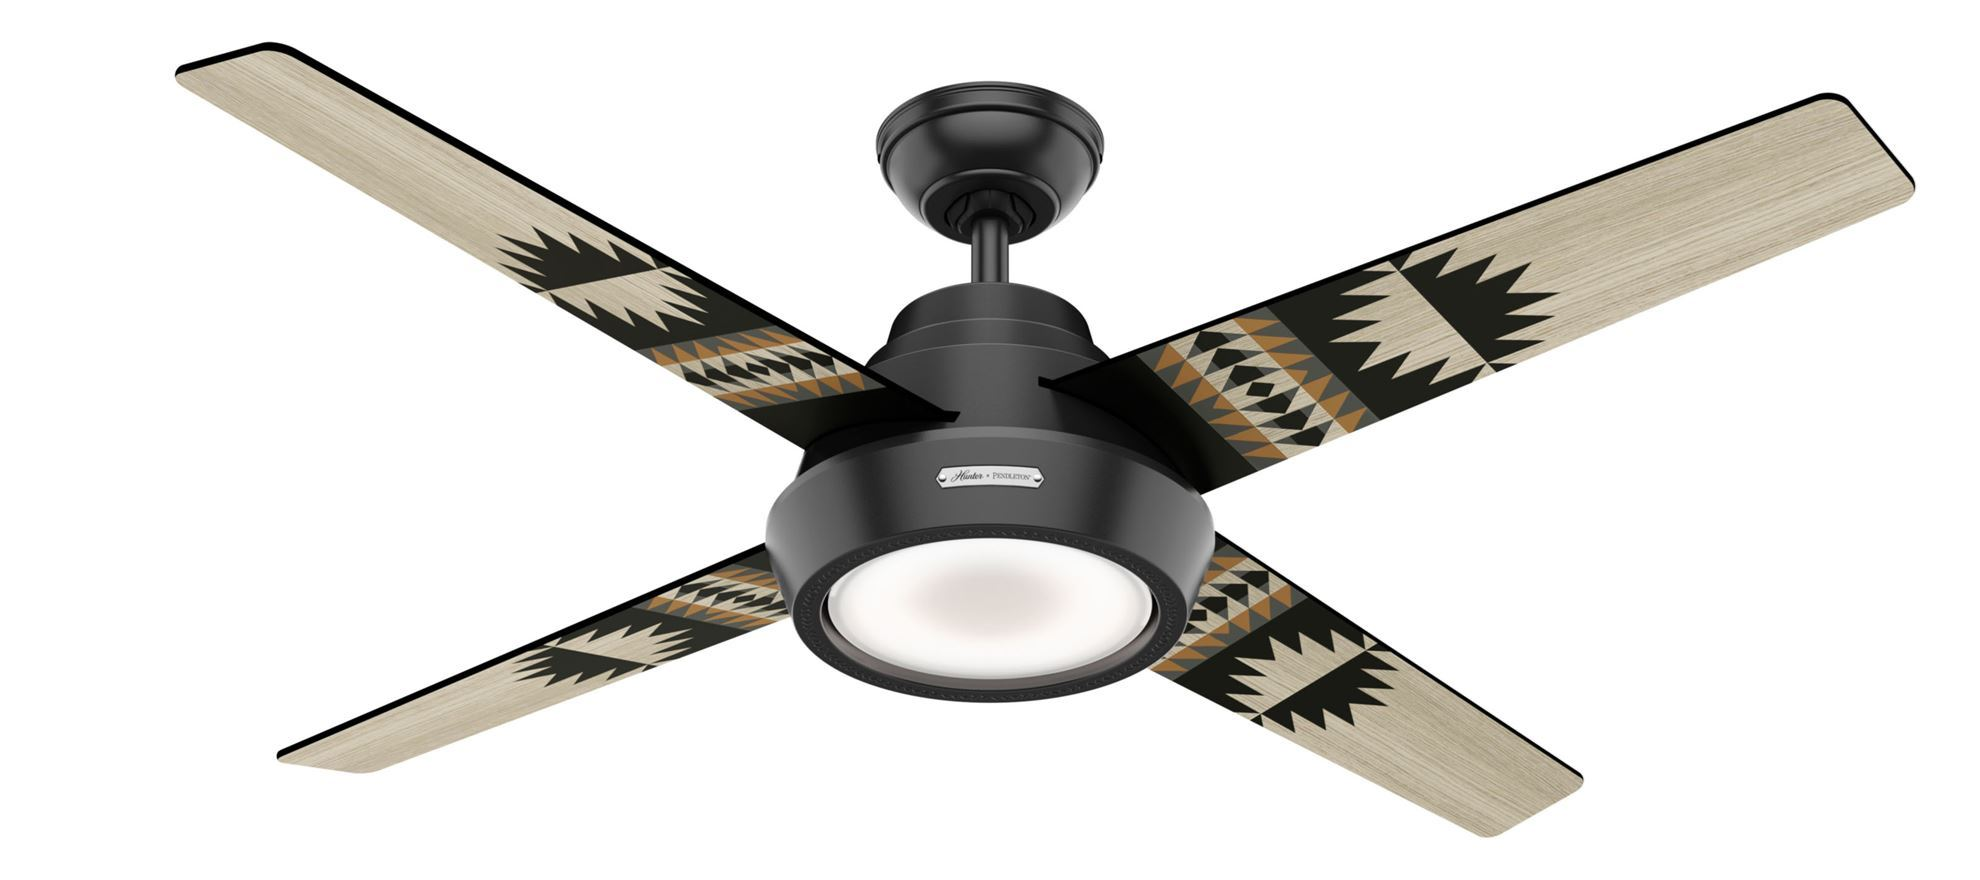 Hunter 54 Pendelton Spider Rock Eagle Rock Matte Black Ceiling Fan With Light Model 59389 Dan S Fan City Ceiling Fans Fan Parts Accessories